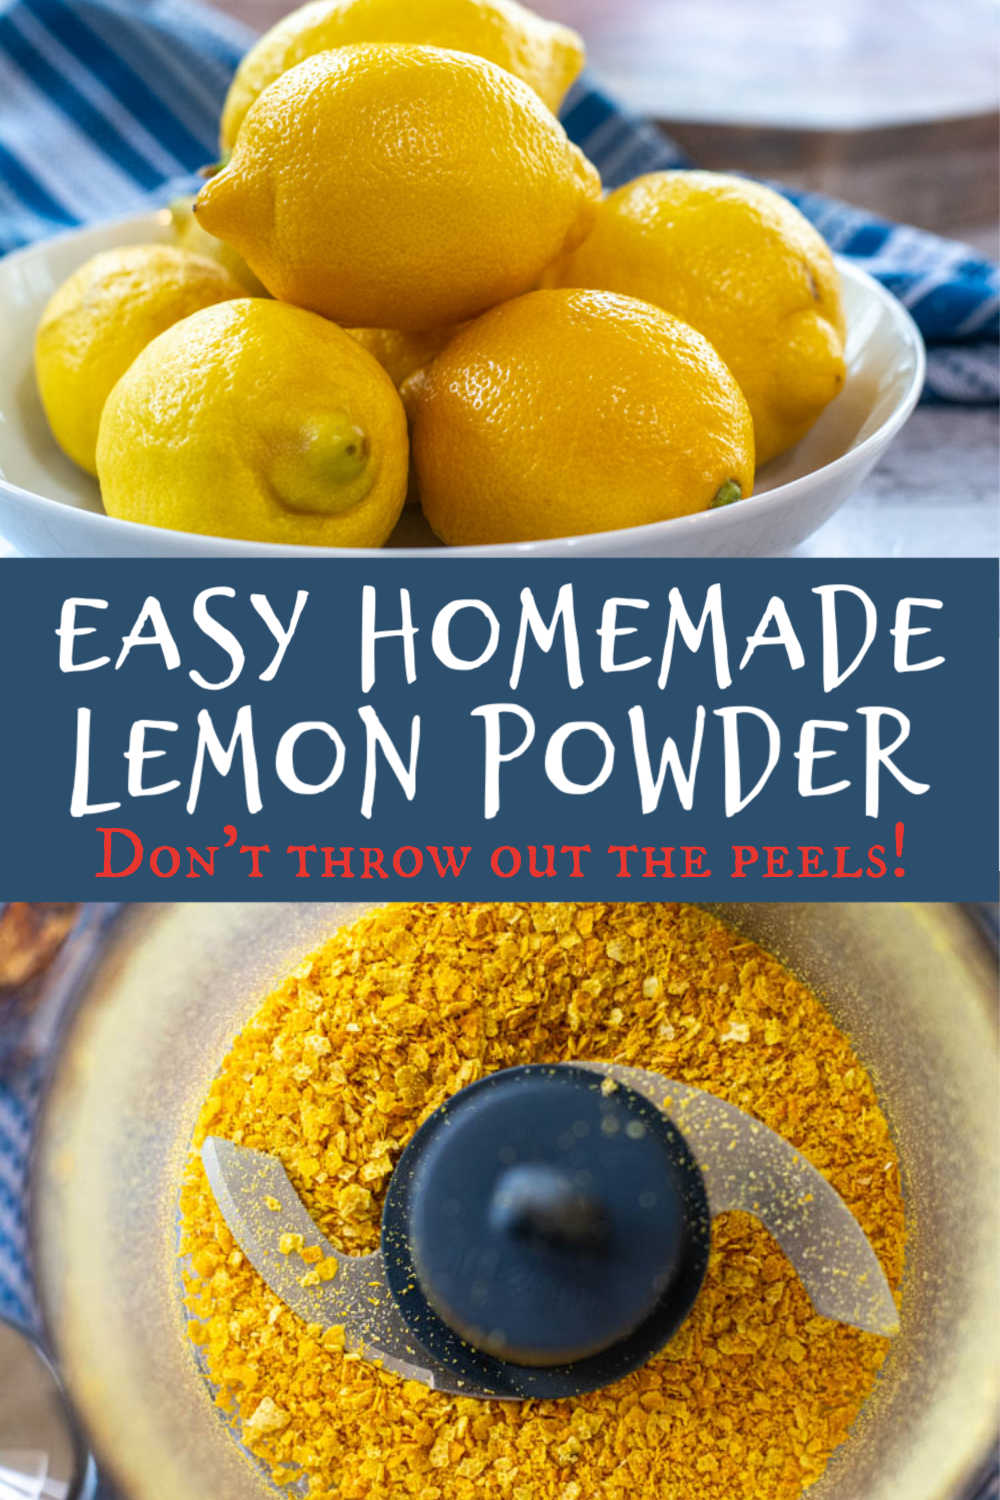 How to Make and Use Dried Lemon Peels